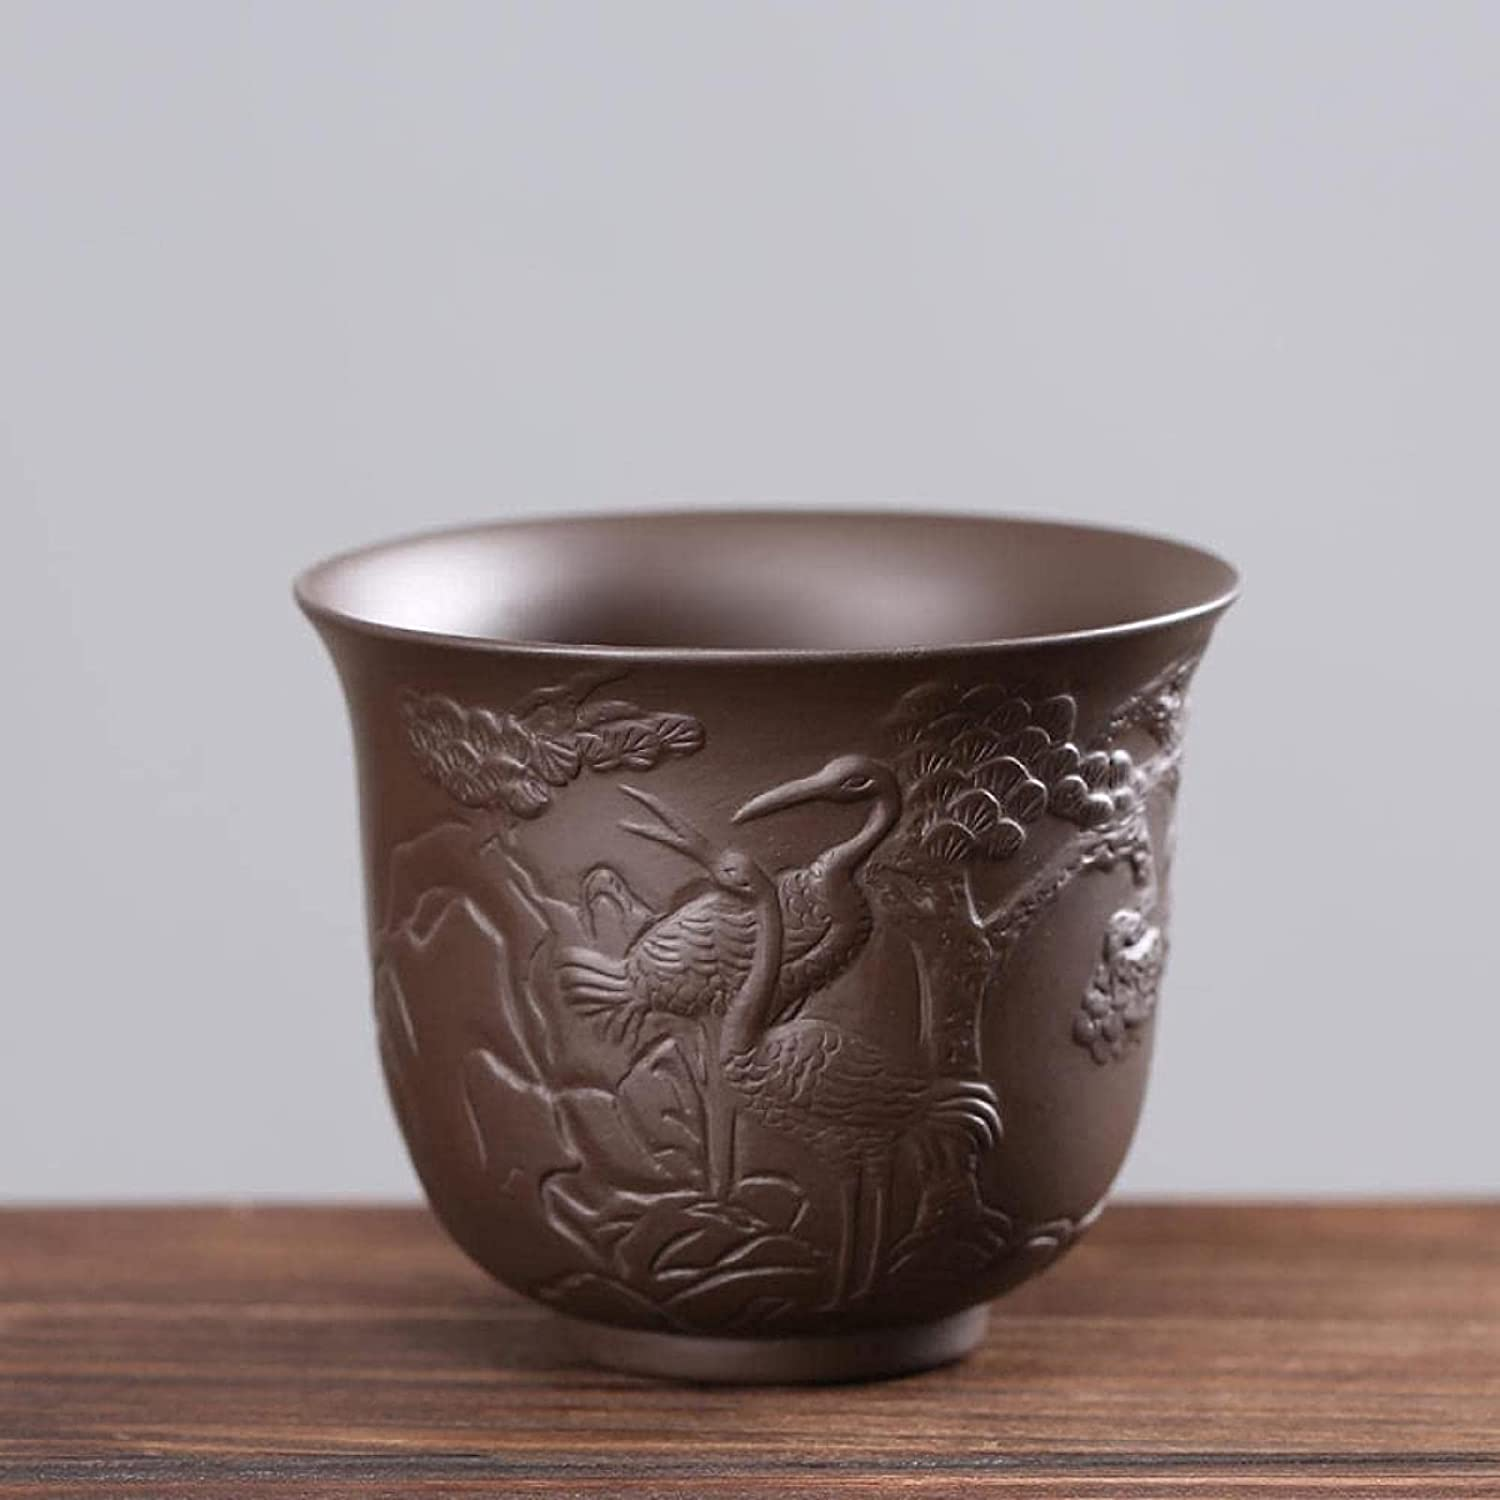 Chinese Traditional Teacup Zi Sha Kungfu Porcel Manufacturer Ultra-Cheap Deals direct delivery China Cups Tea